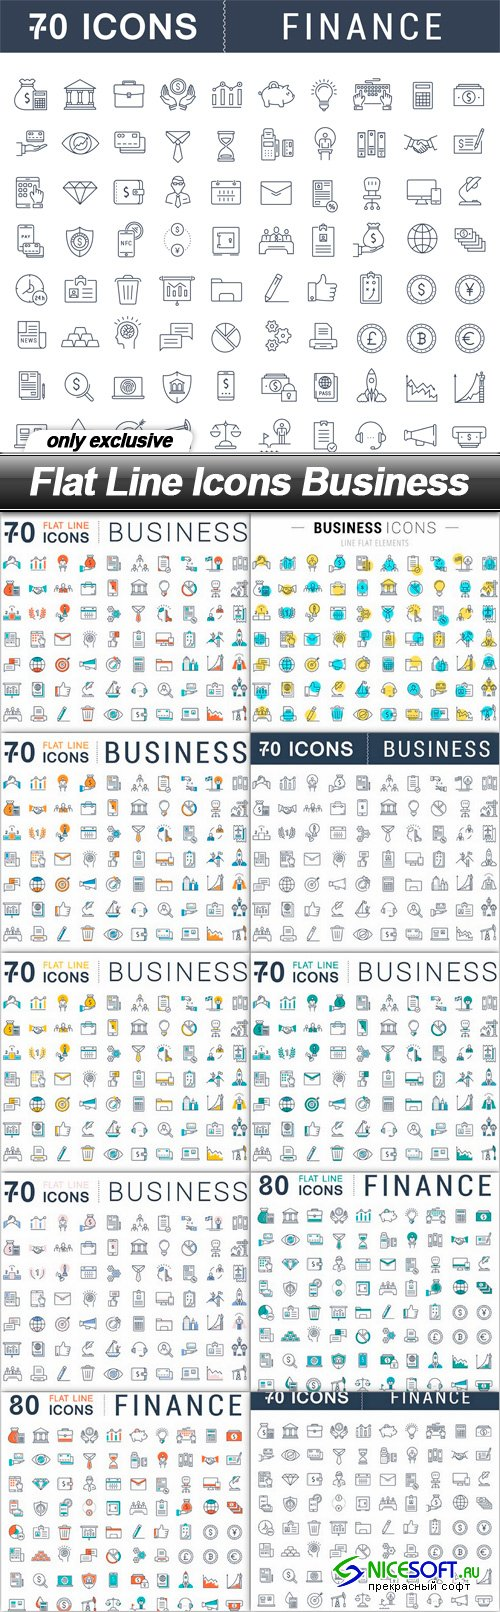 Flat Line Icons Business